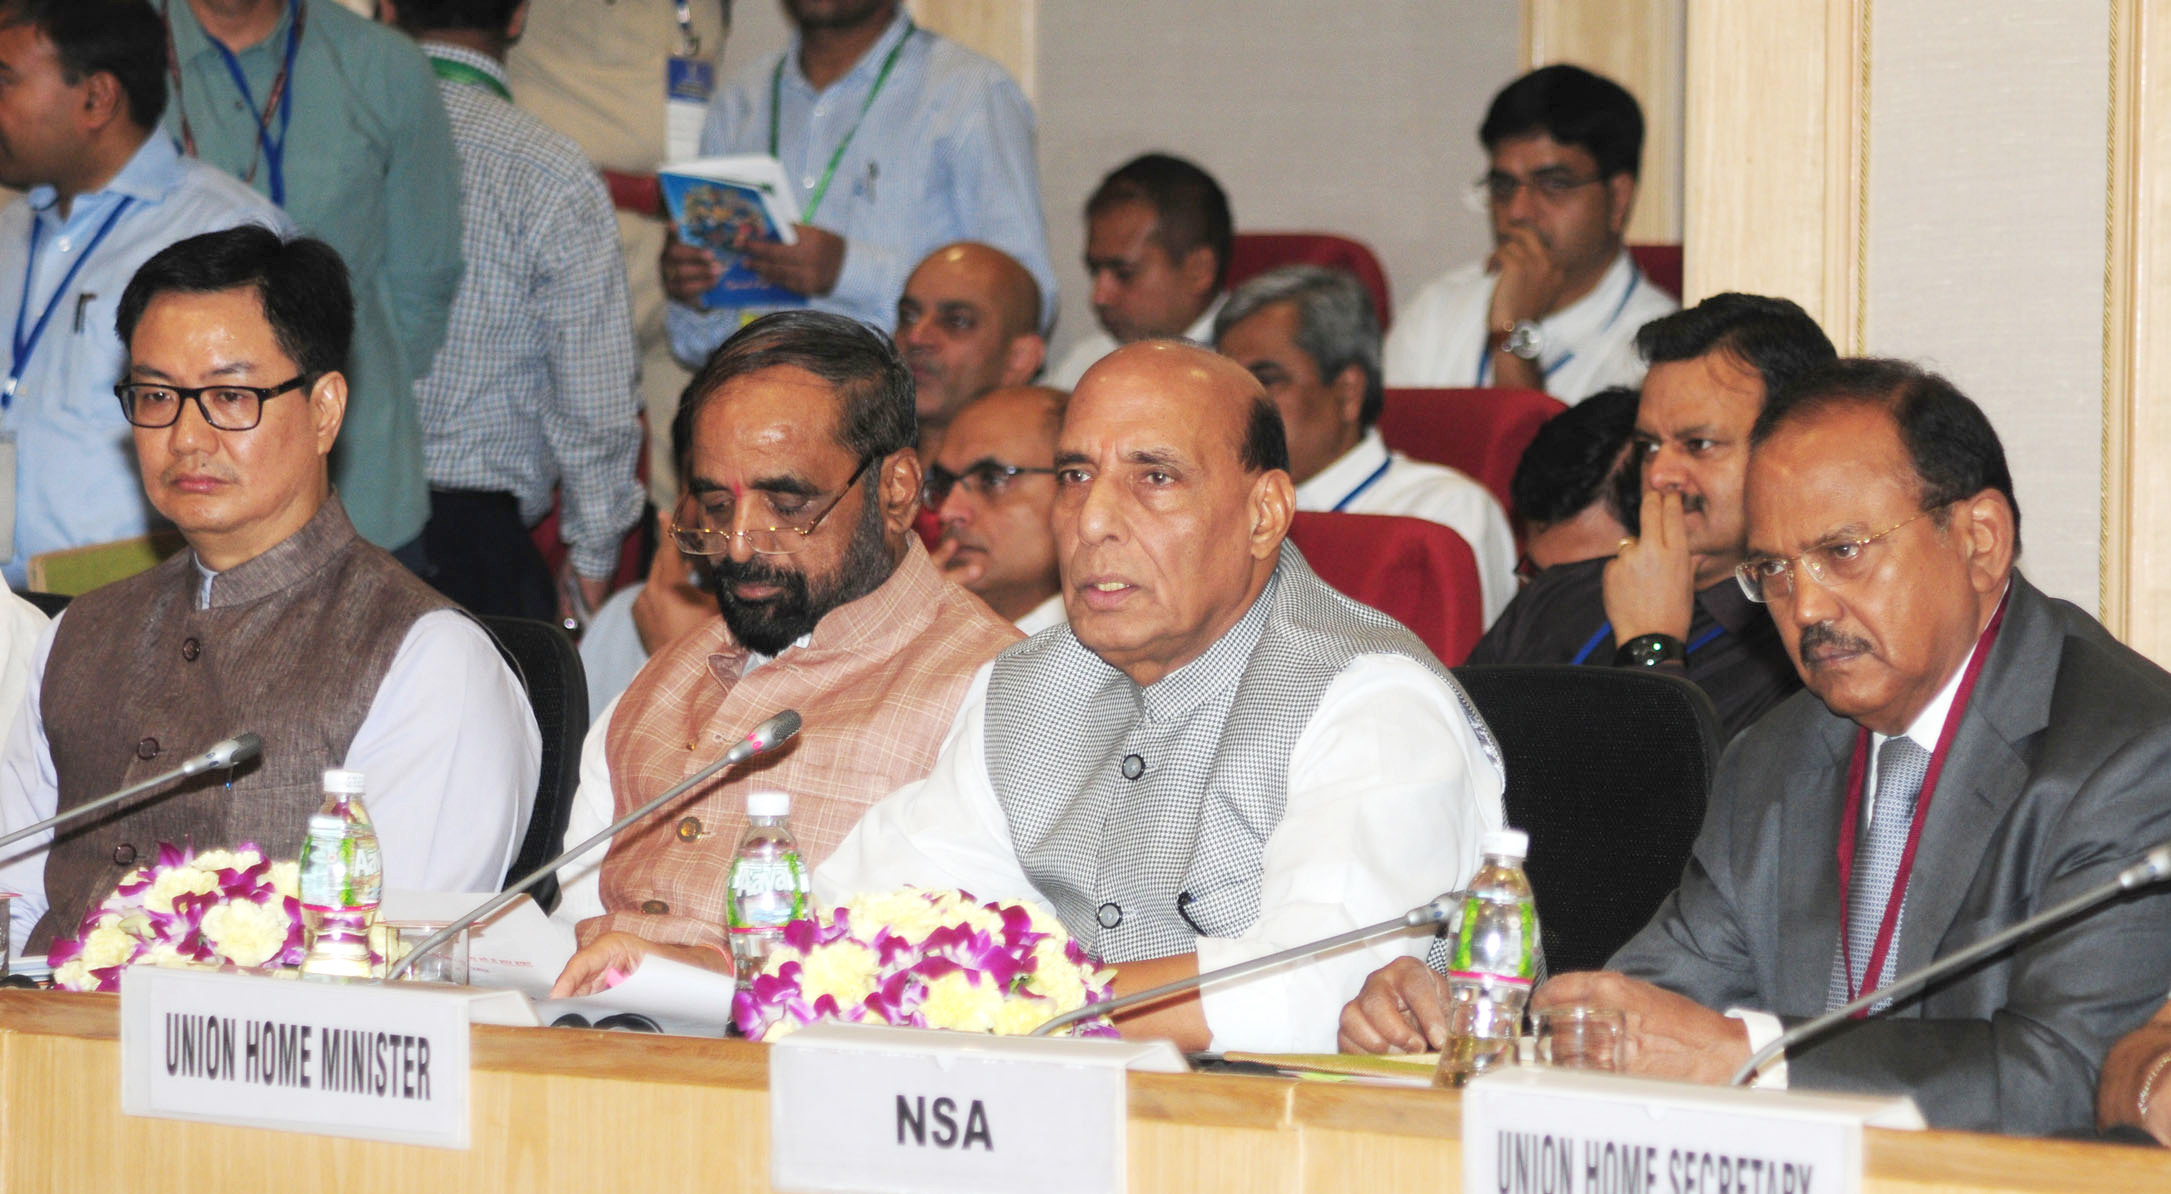 The Union Home Minister, Shri Rajnath Singh chairing the meeting with the Chief Ministers to review the security issues to deal with Left Wing Extremism (LWE), in New Delhi on May 08, 2017. The Ministers of State for Home Affairs, Shri Hansraj Gangaram Ahir and Shri Kiren Rijiju and the National Security Adviser (NSA), Shri Ajit Doval are also seen.